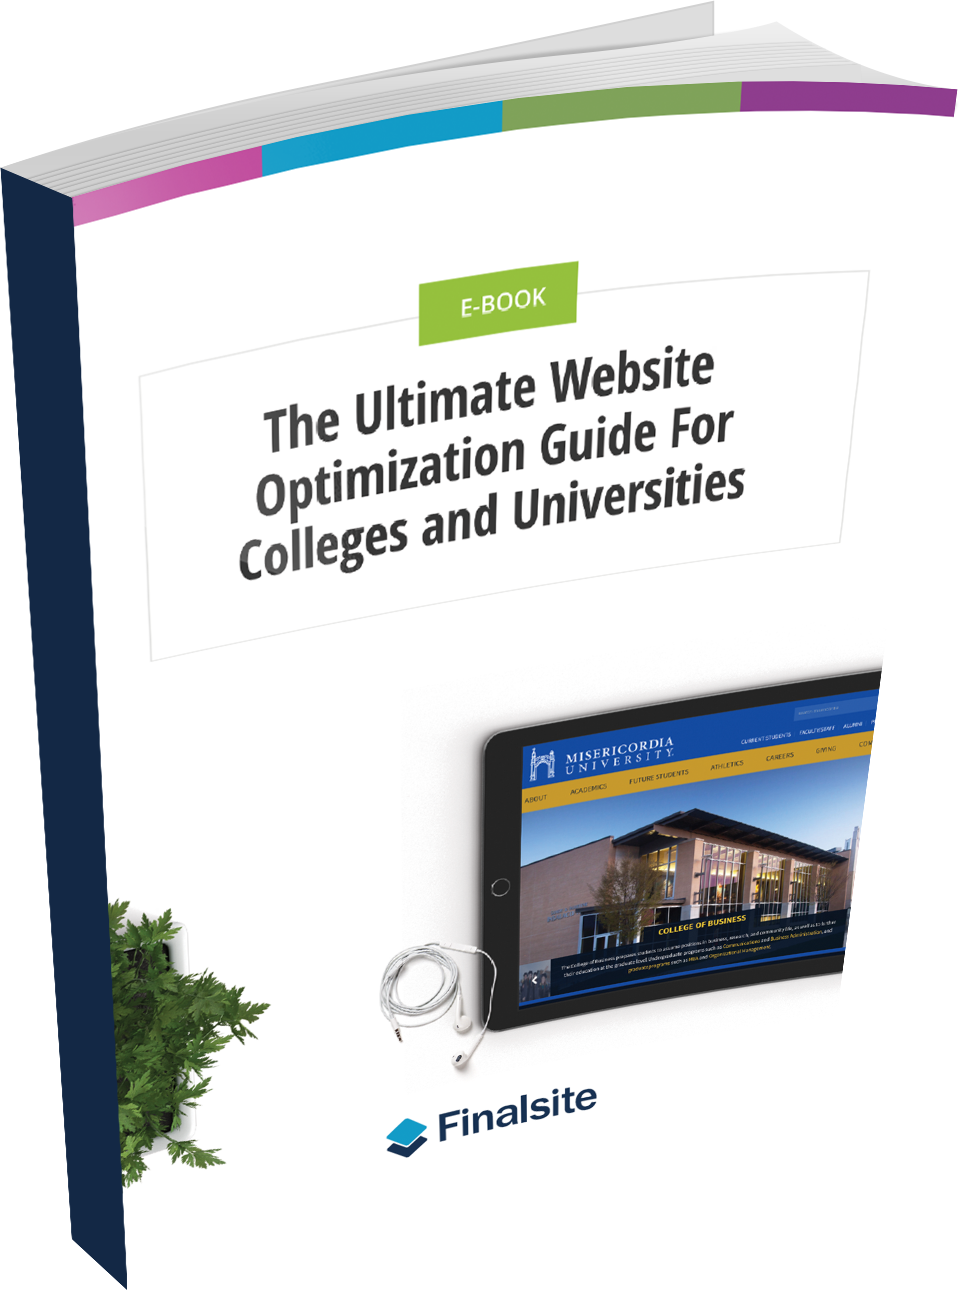 eBook: The Ultimate Website Optimization Guide for Colleges and Universities